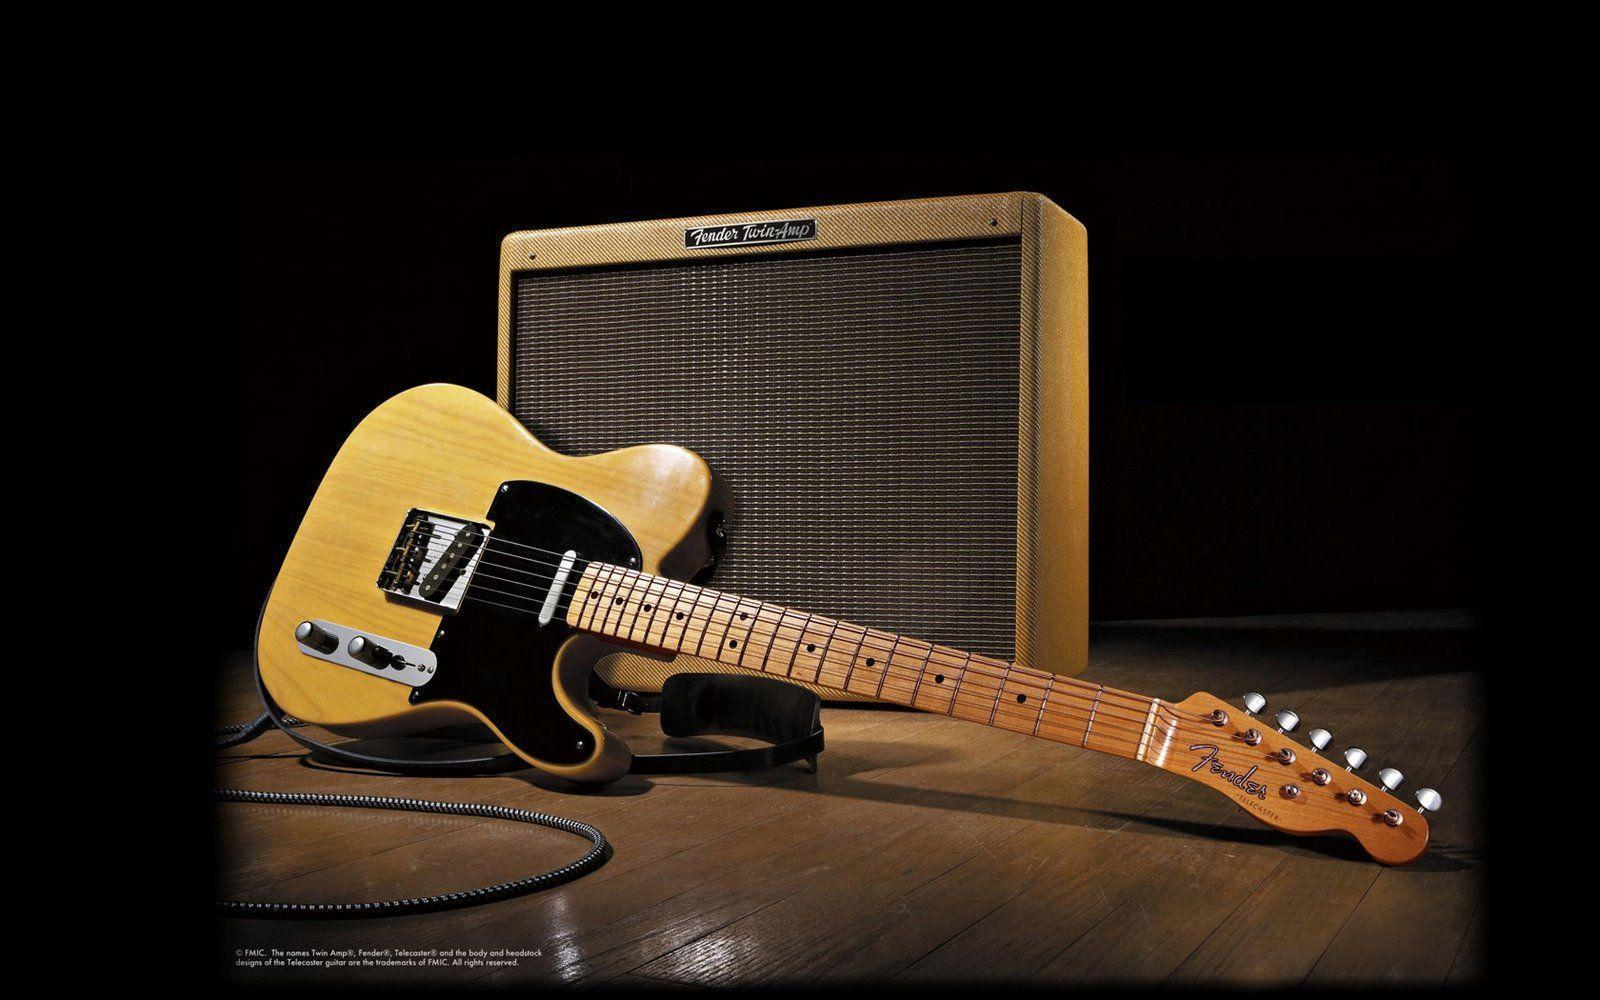 Fender Electric Guitar Wallpaper